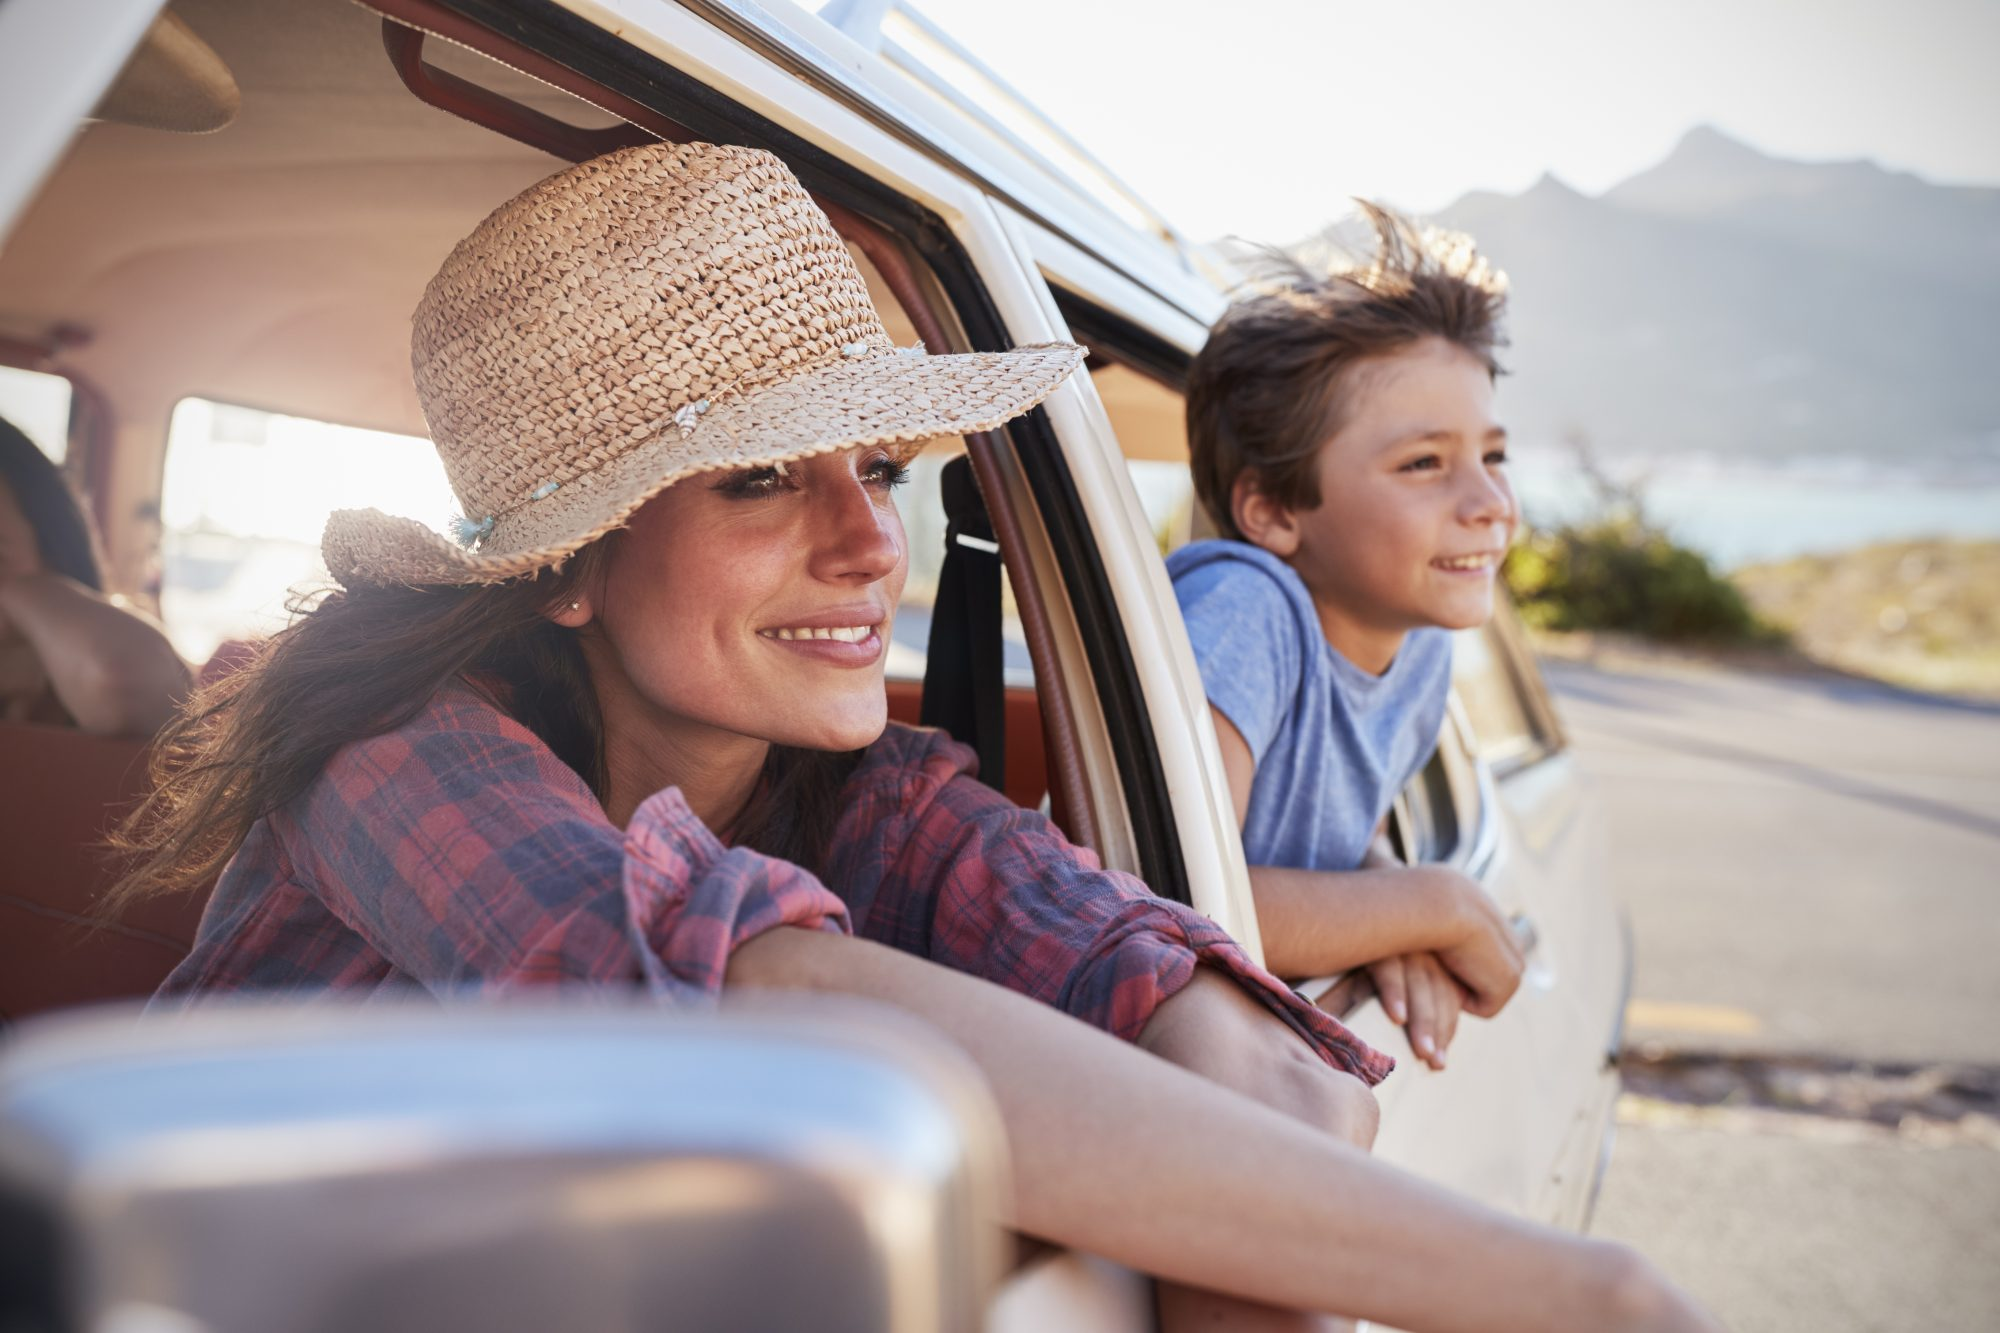 73% of Americans Prefer Road Trips to Flying, According to Latest Study